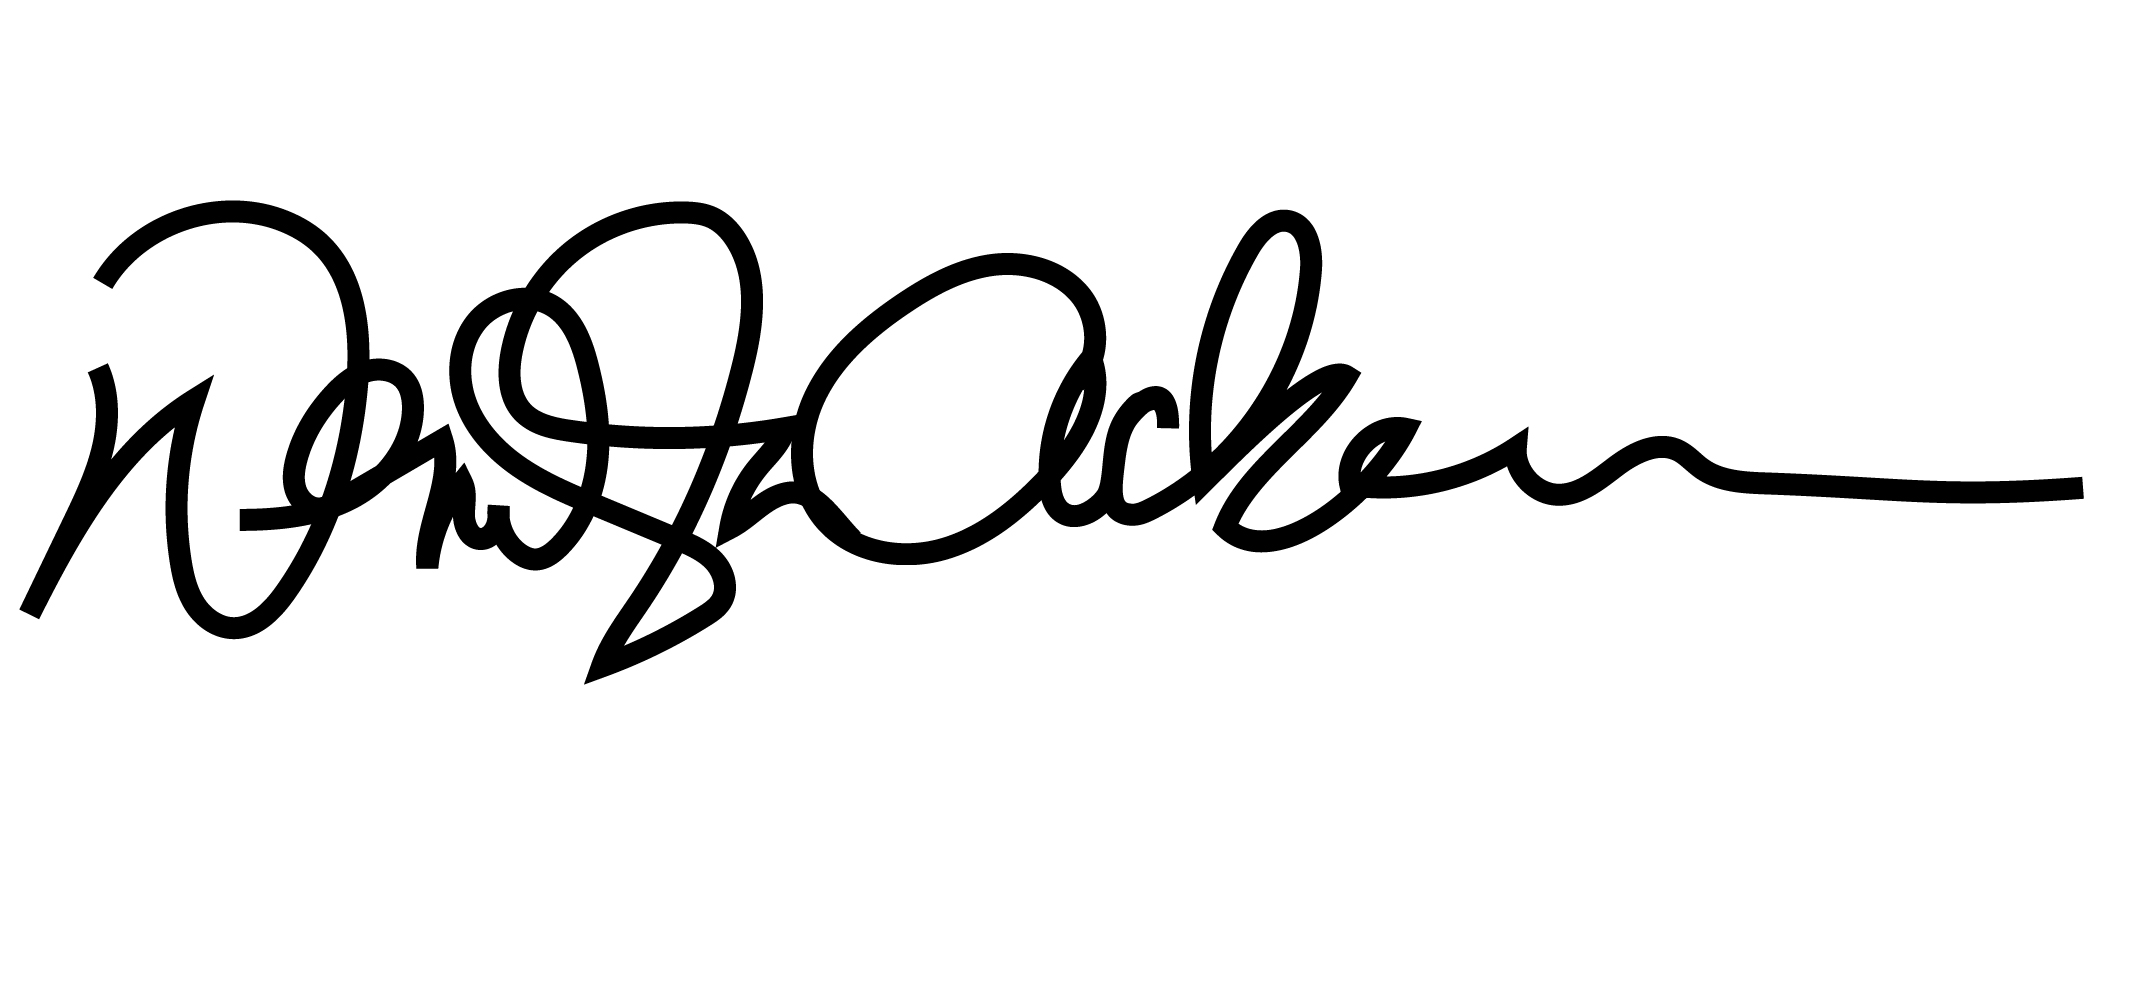 Wendy Ackerman's Signature